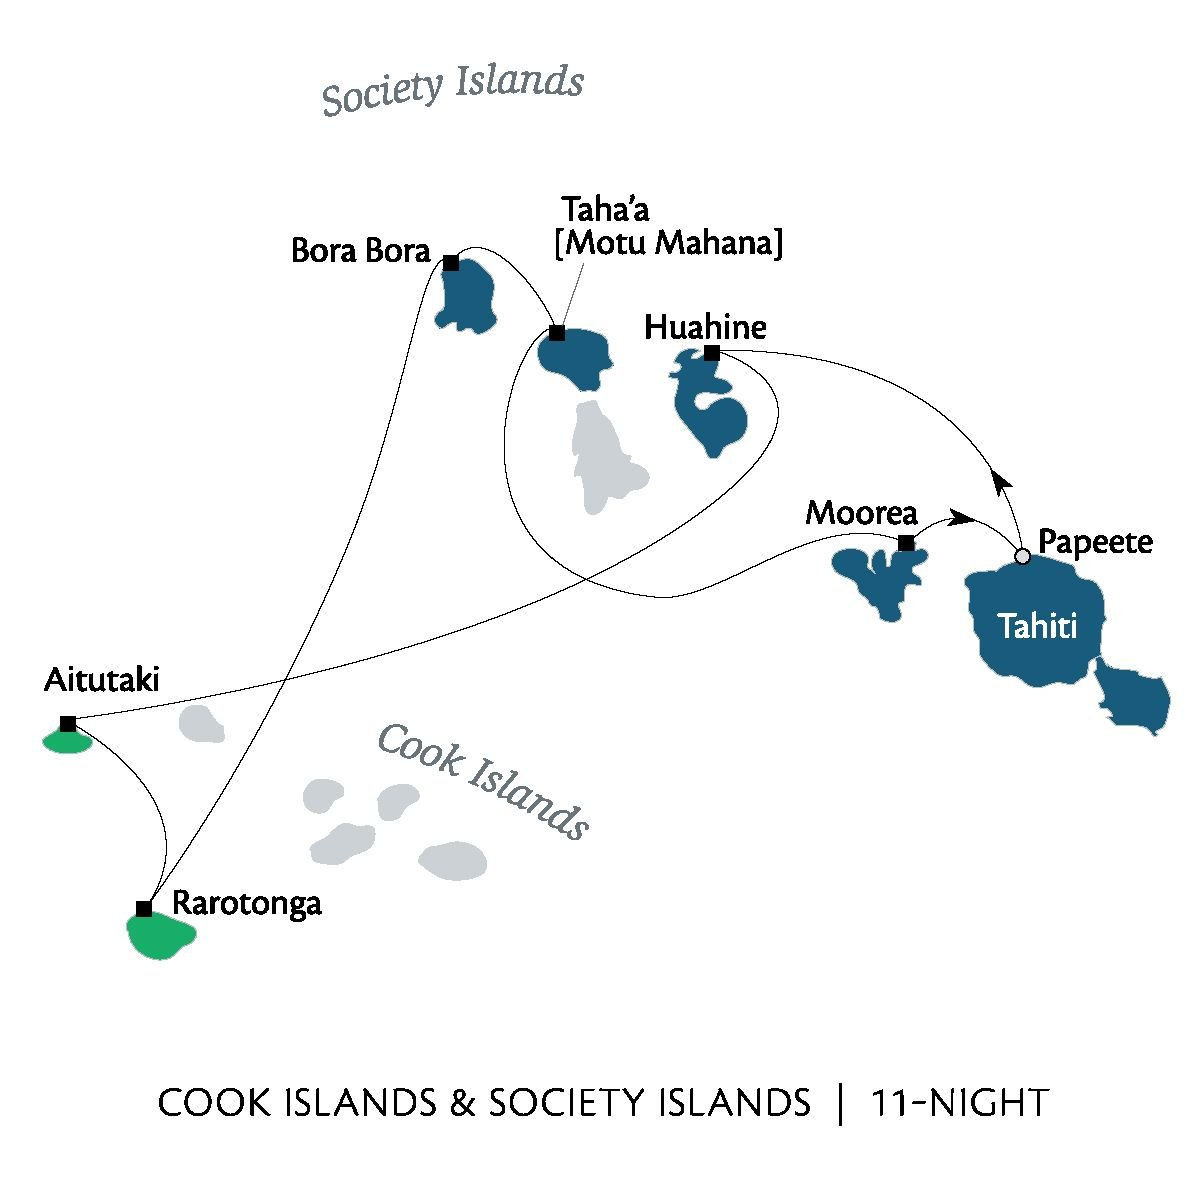 Cook Islands & Society Islands. 11-night cruise.